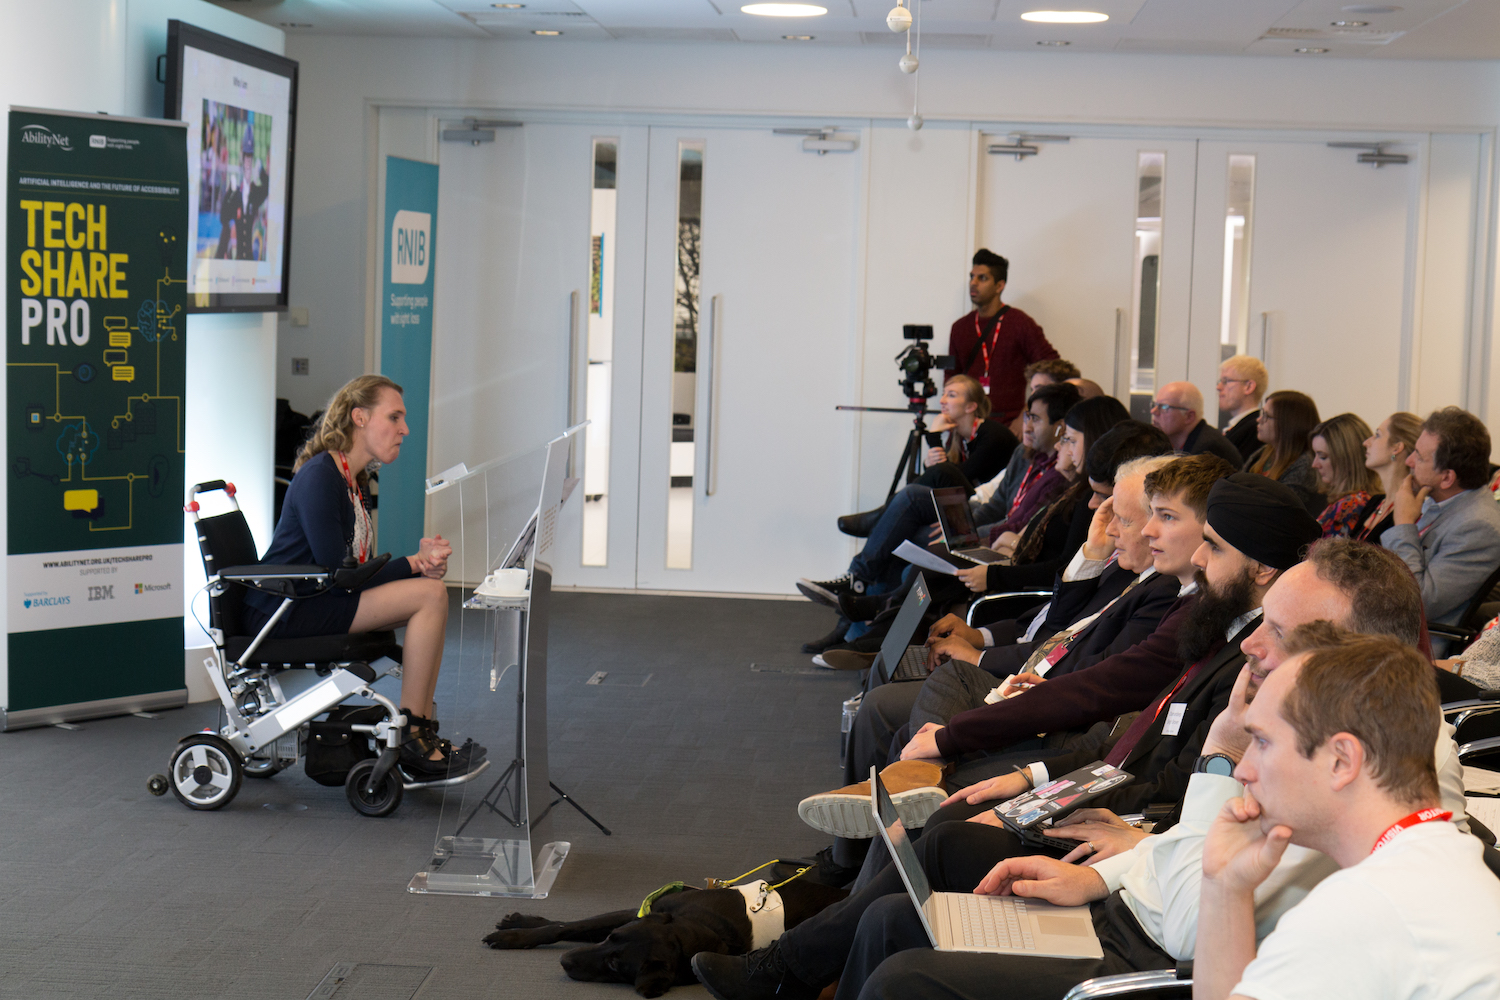 Sophie Christiansoon was a guest speaker AbilityNet's TechShare pro